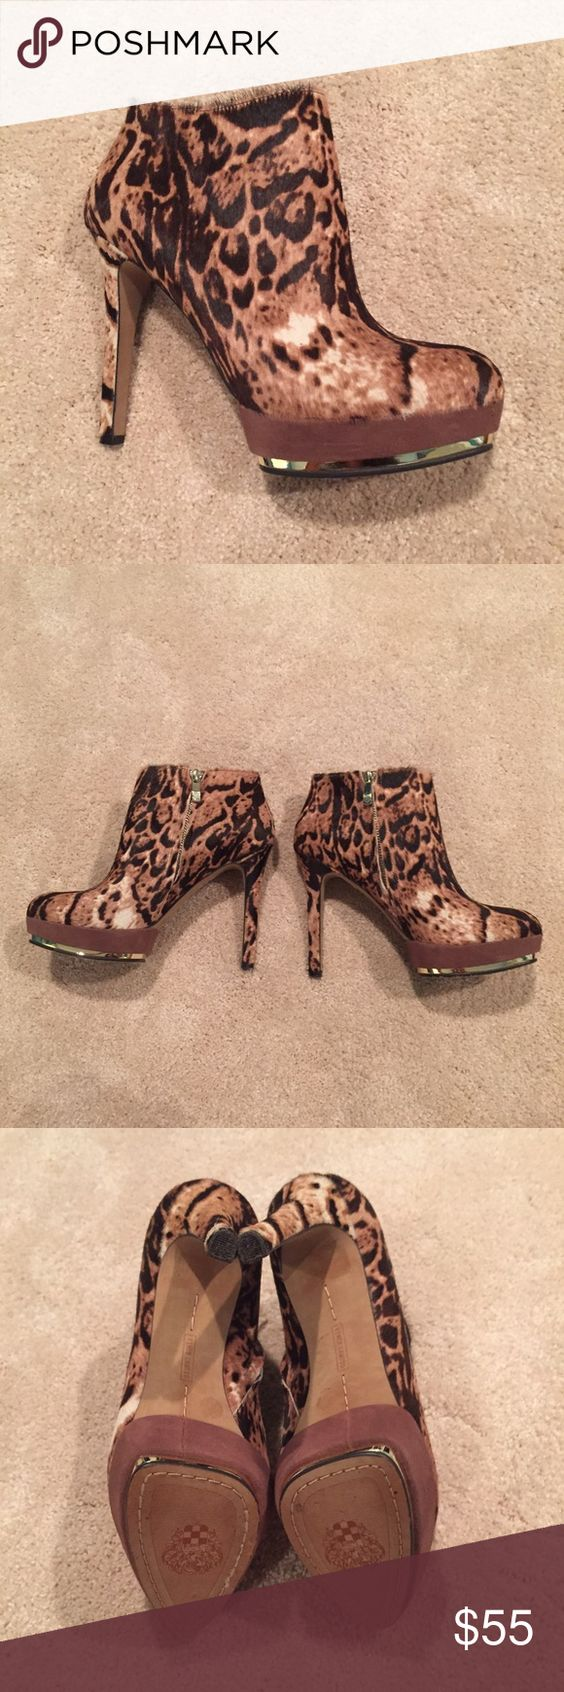 Vince Camuto leopard print booties Fierce booties in great condition, hardly worn. There's some dark marking on the inside of the booties near the zipper, but it doesn't show at all on the outside. Beautiful gold trim on the bottom platform and gold zipper on the inside! Vince Camuto Shoes Ankle Boots & Booties